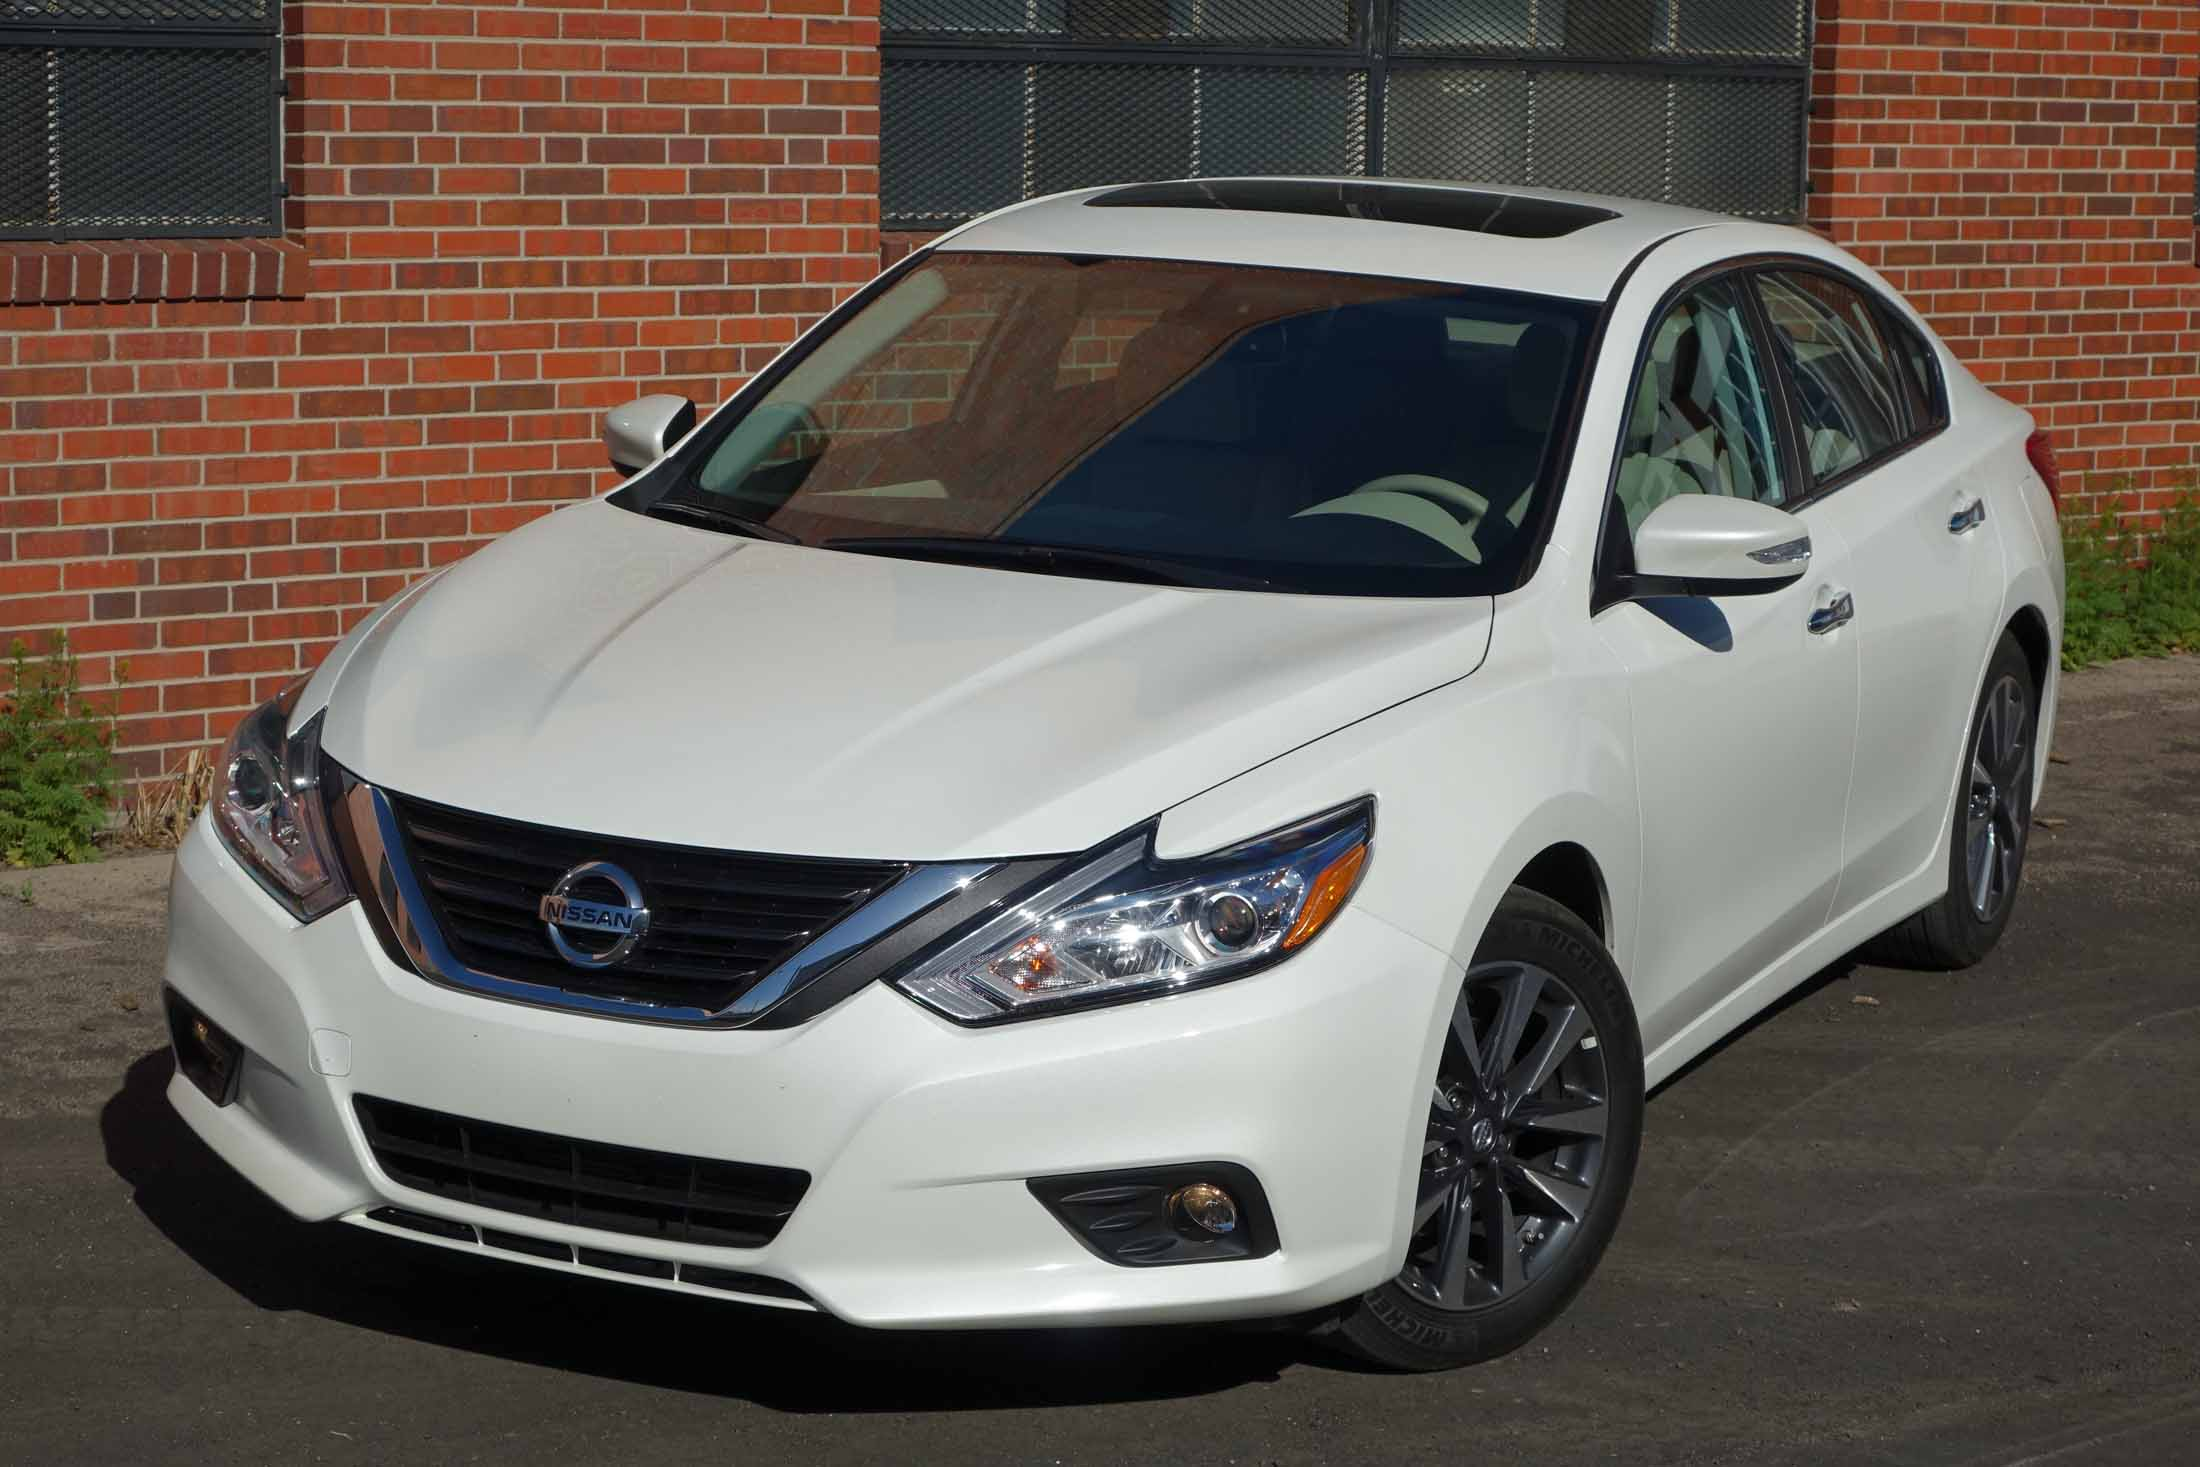 83 A Nissan Altima Coupe 2017 Performance